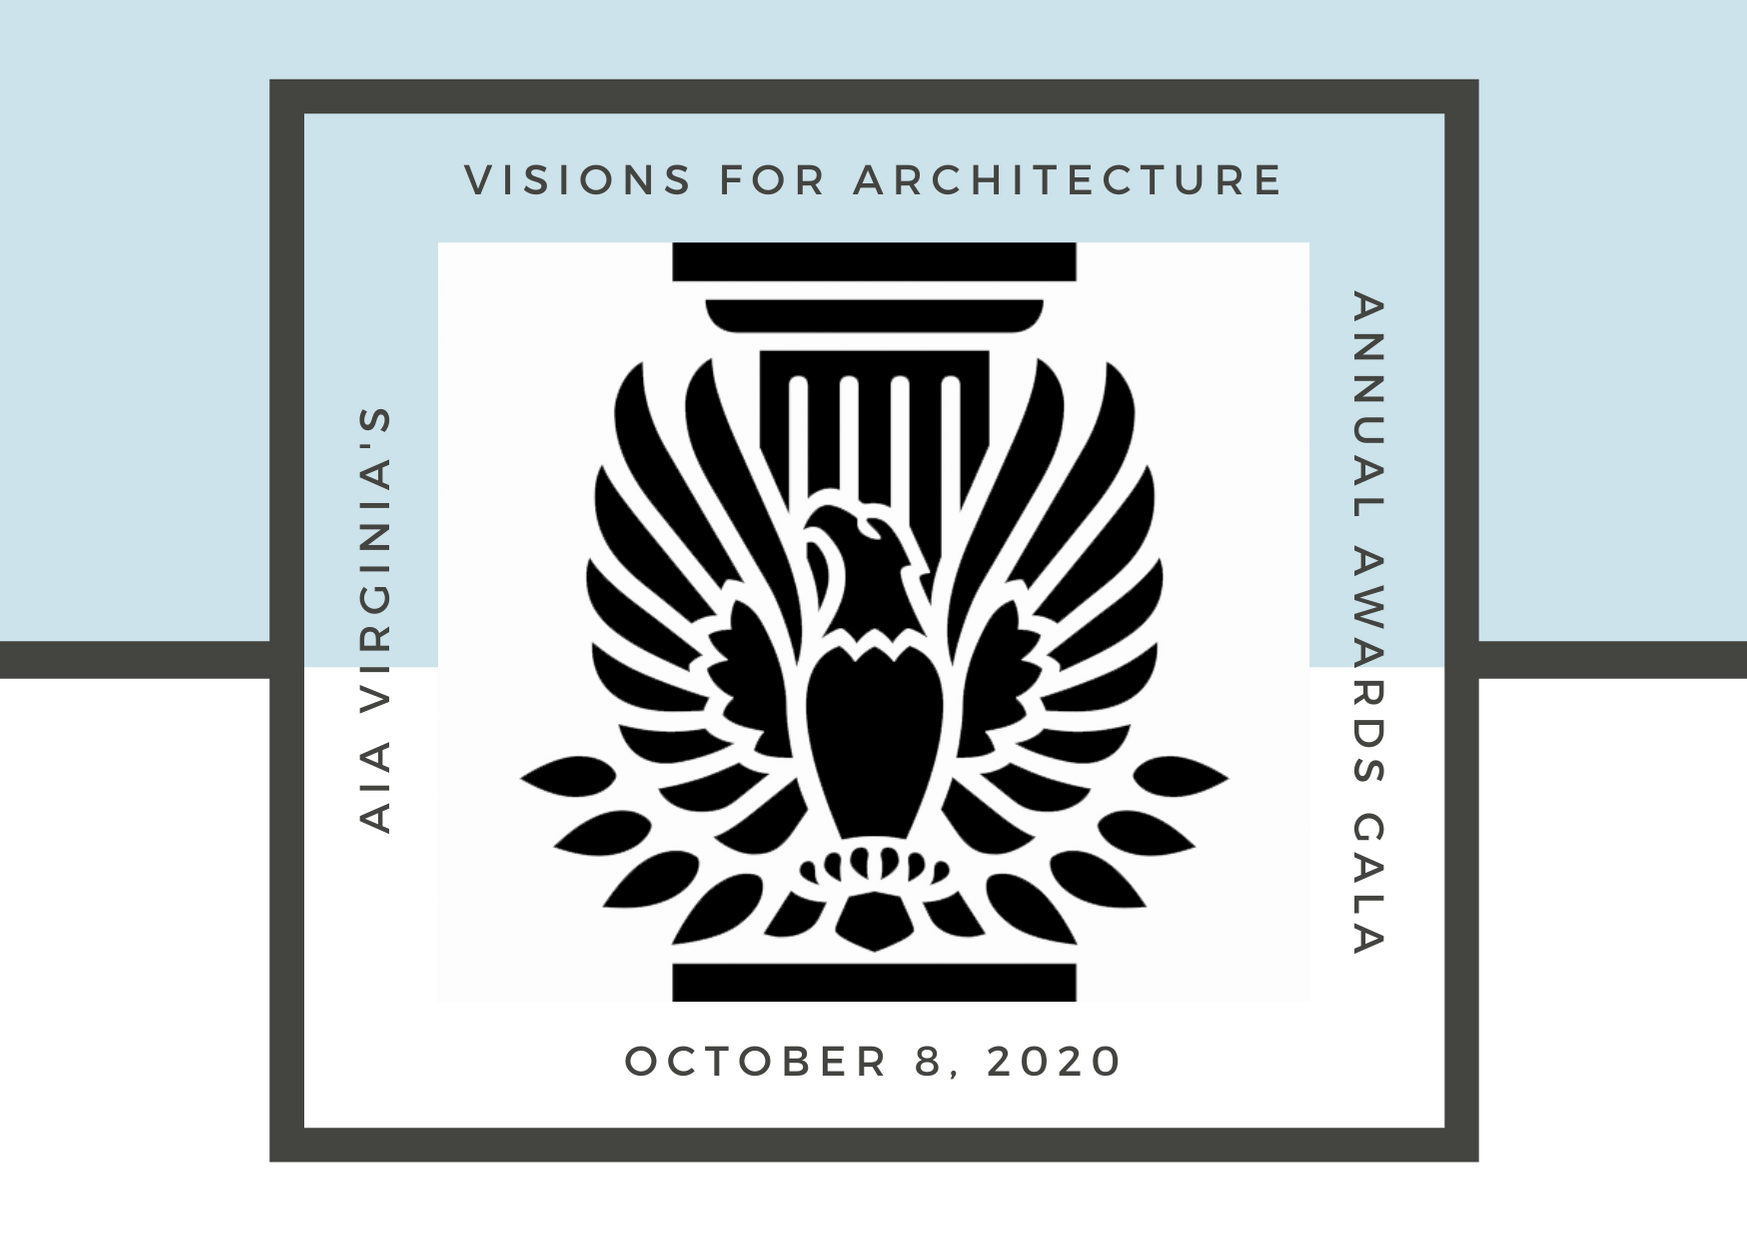 visions 2020 graphic